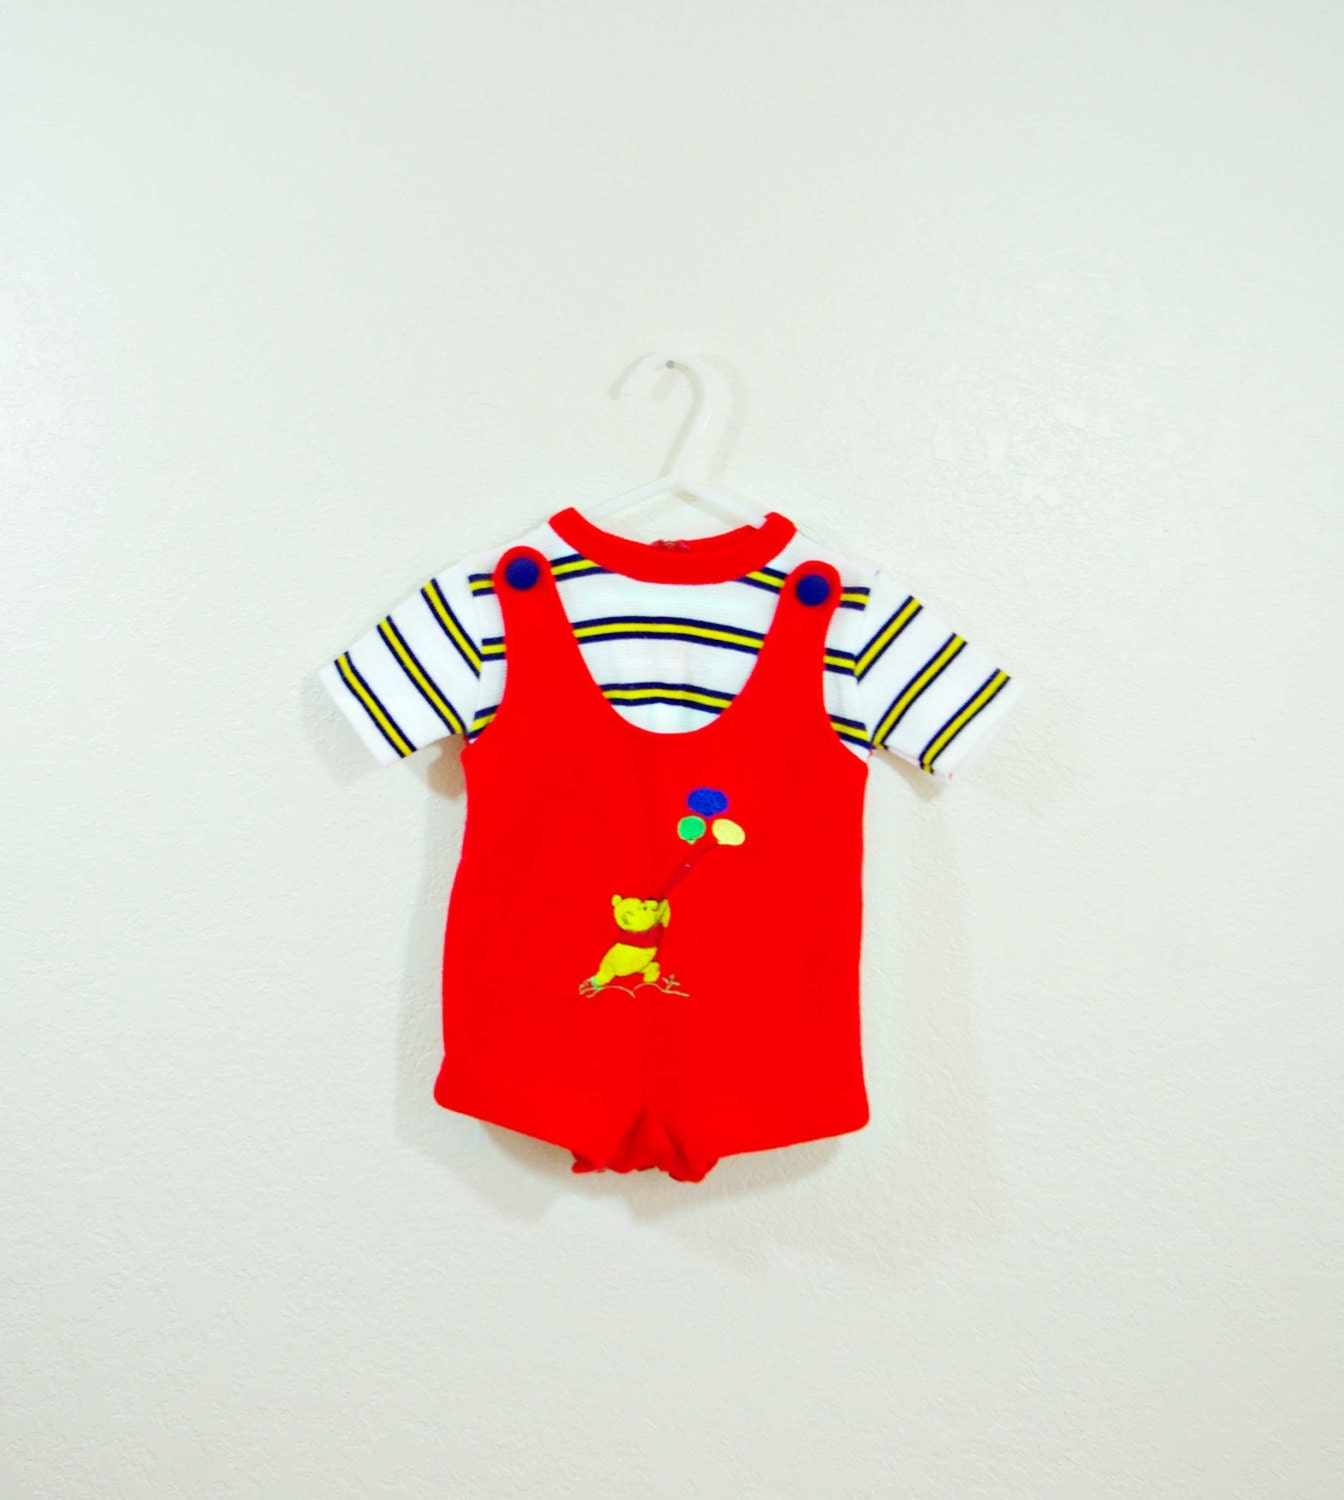 Vintage Baby Boy Knitted Pooh Bear Romper, size 9 months, red knitted romper, blue and yellow striped shirt, red collar - BugandBearVintage